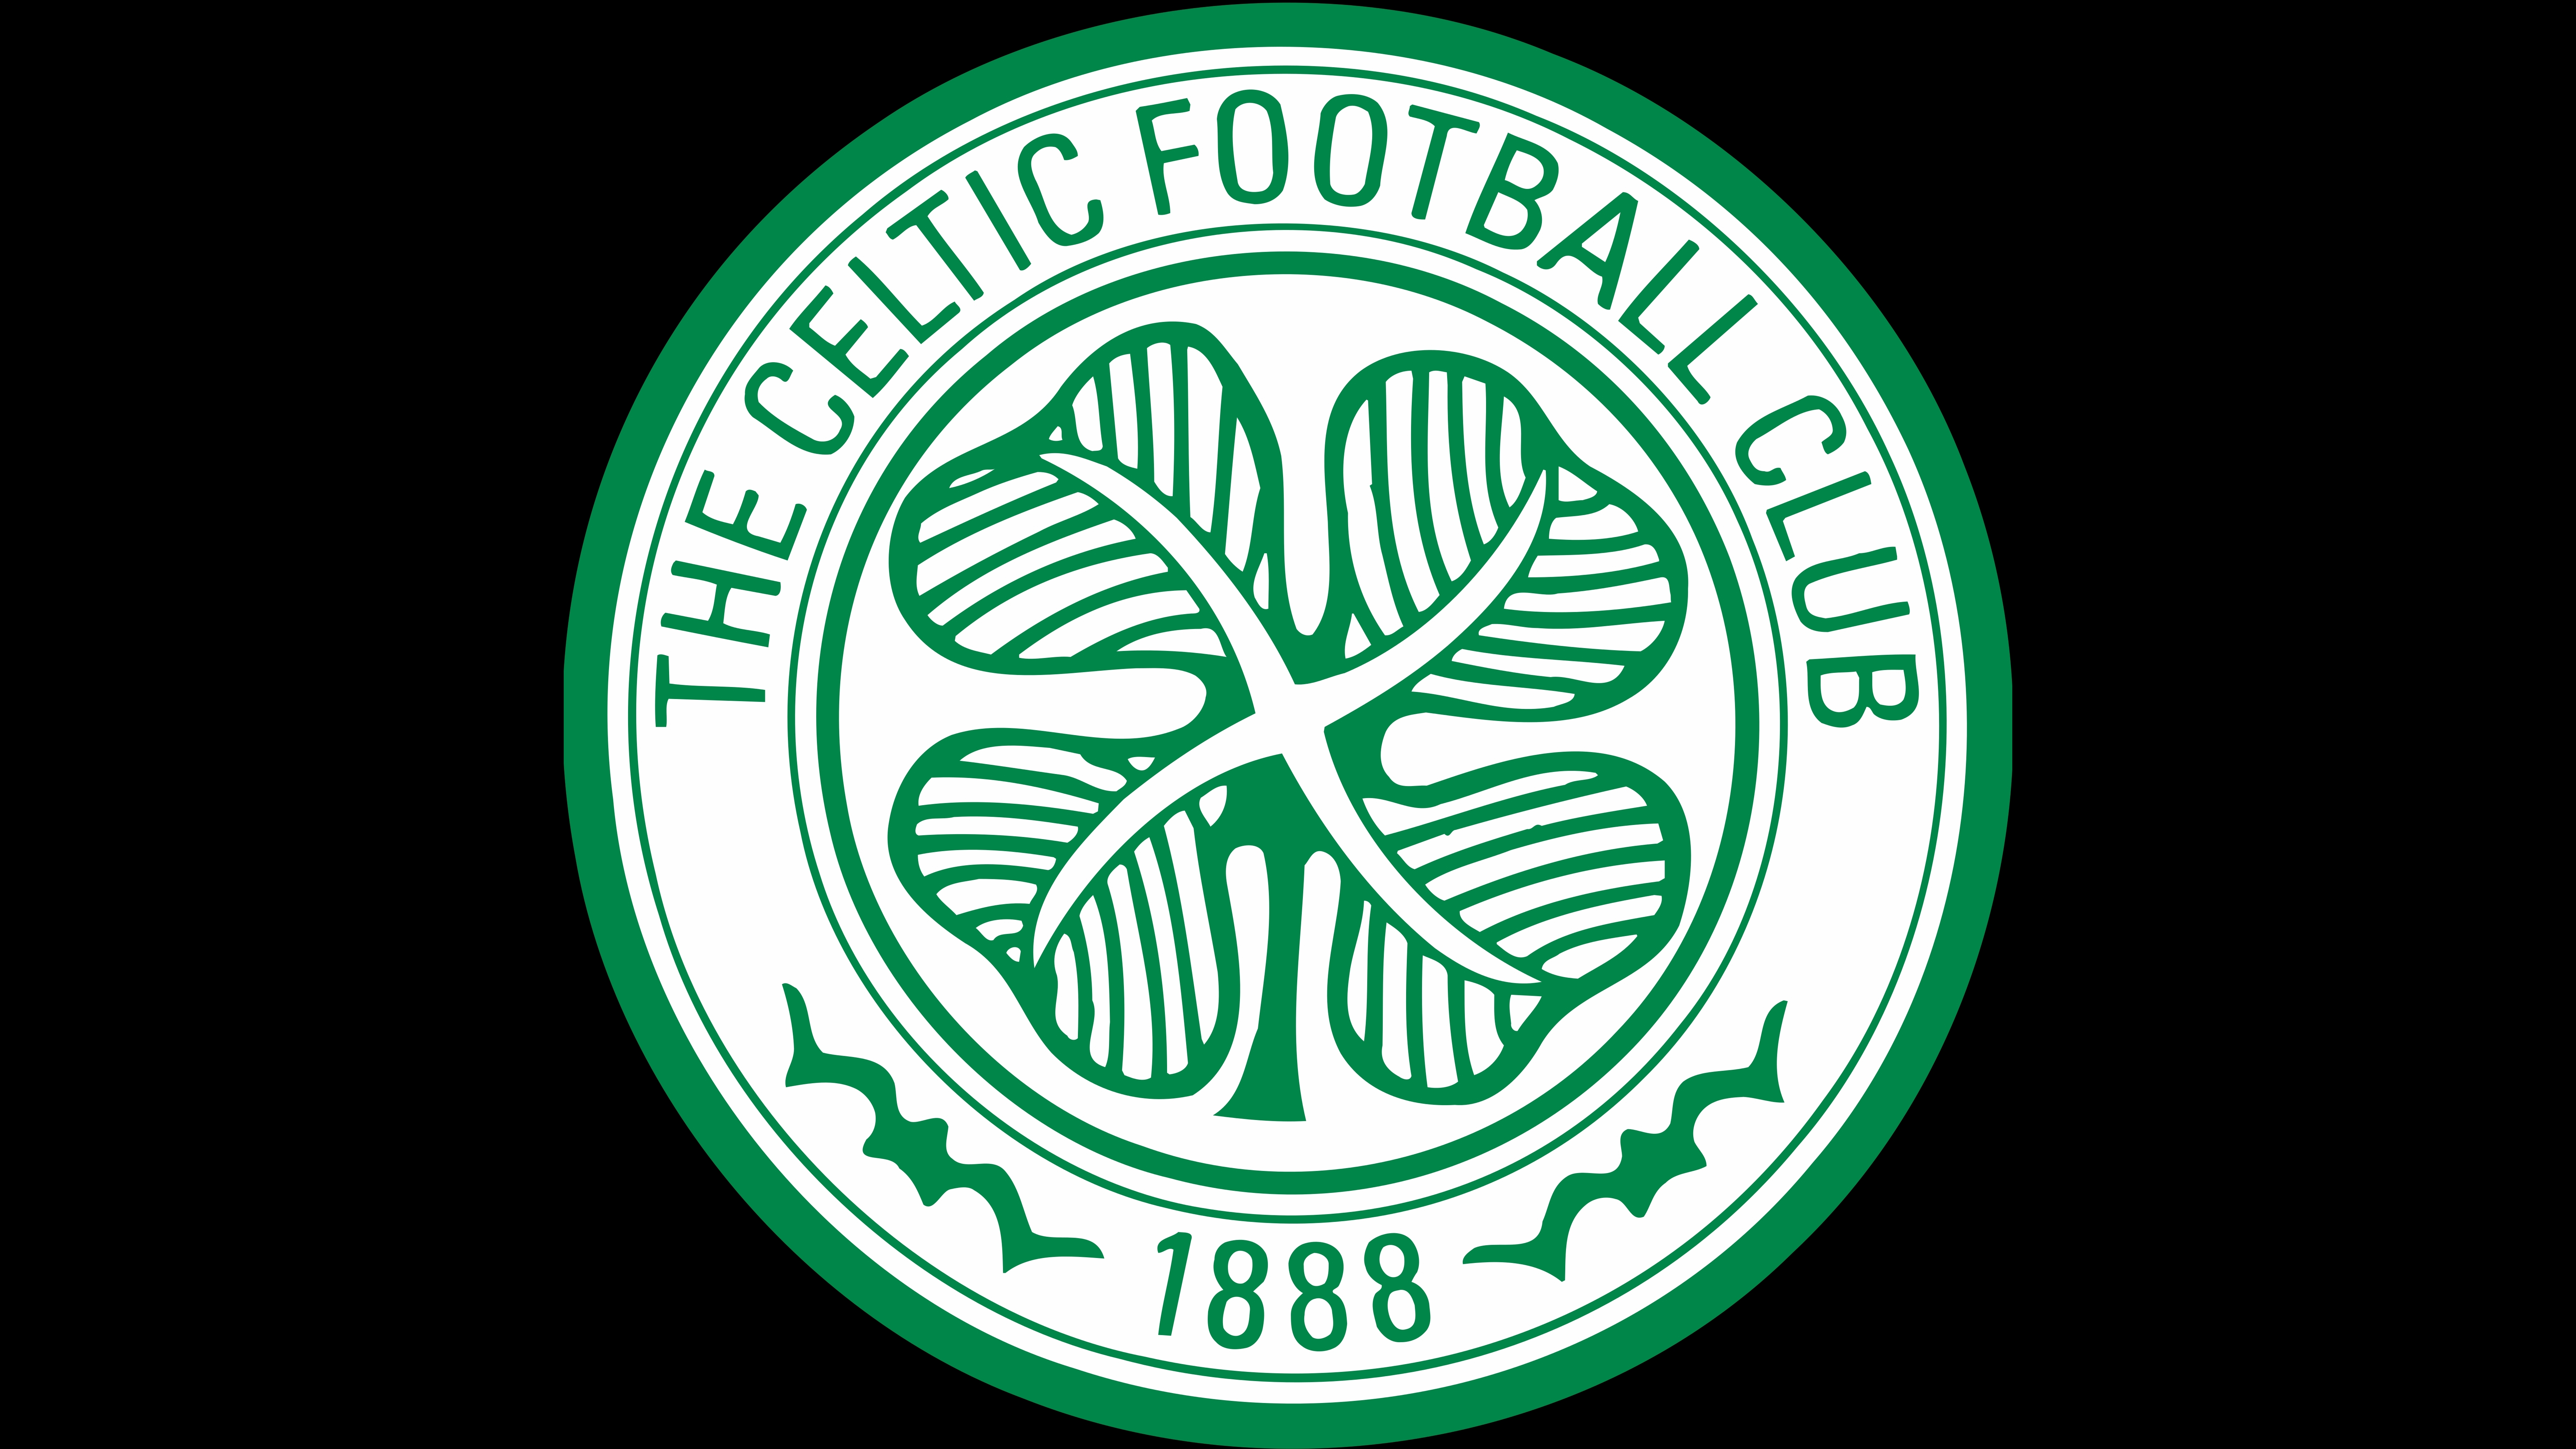 7284x4096 - Celtic F.C. Wallpapers 5